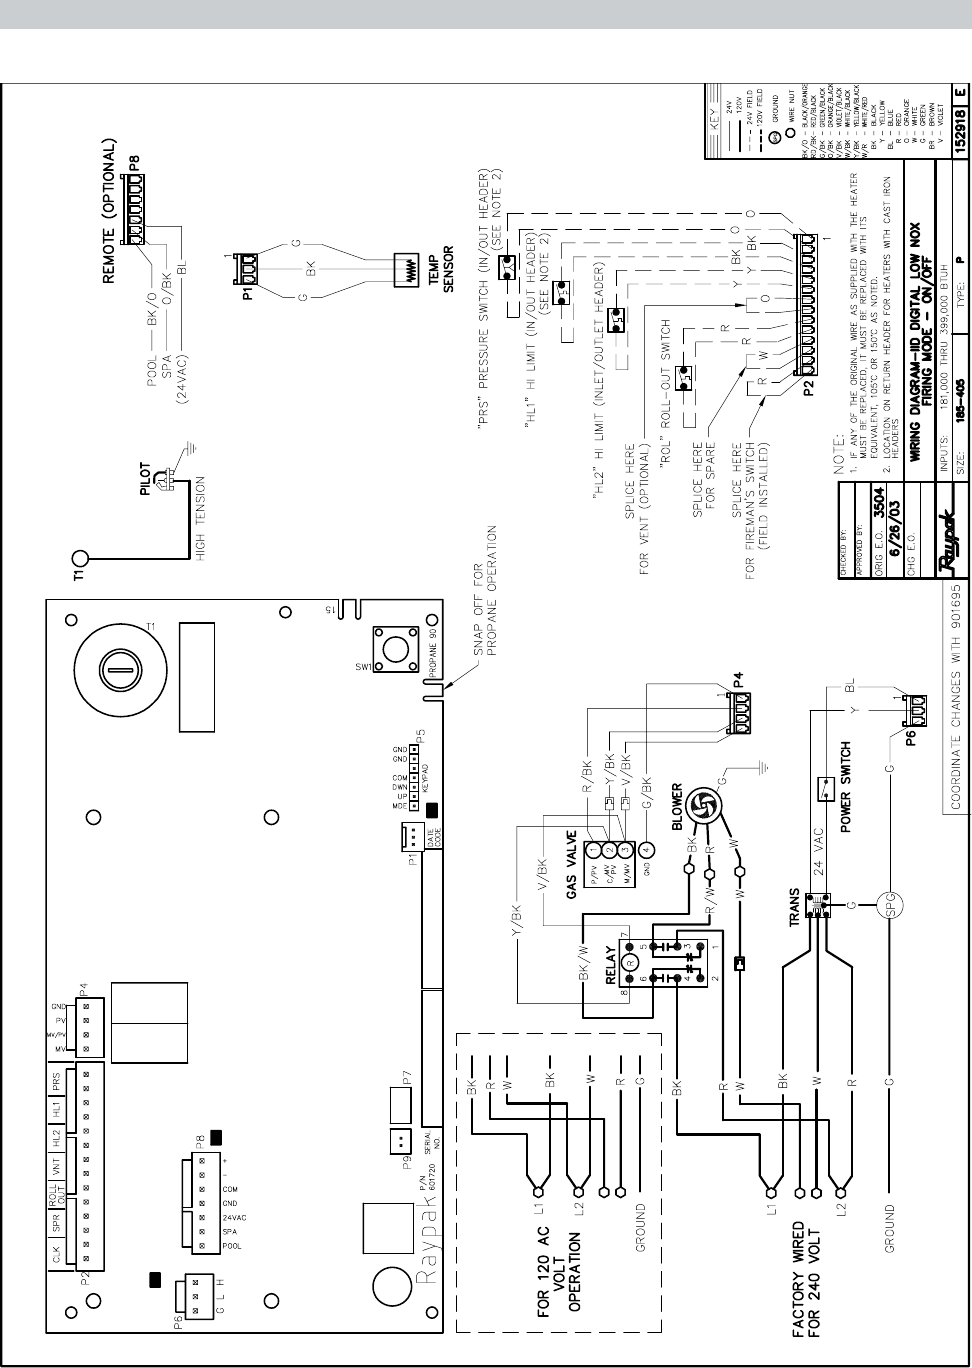 hight resolution of raypak heaters wiring diagrams for wiring diagram name raypak 2100 wiring diagram raypak heaters wiring diagrams